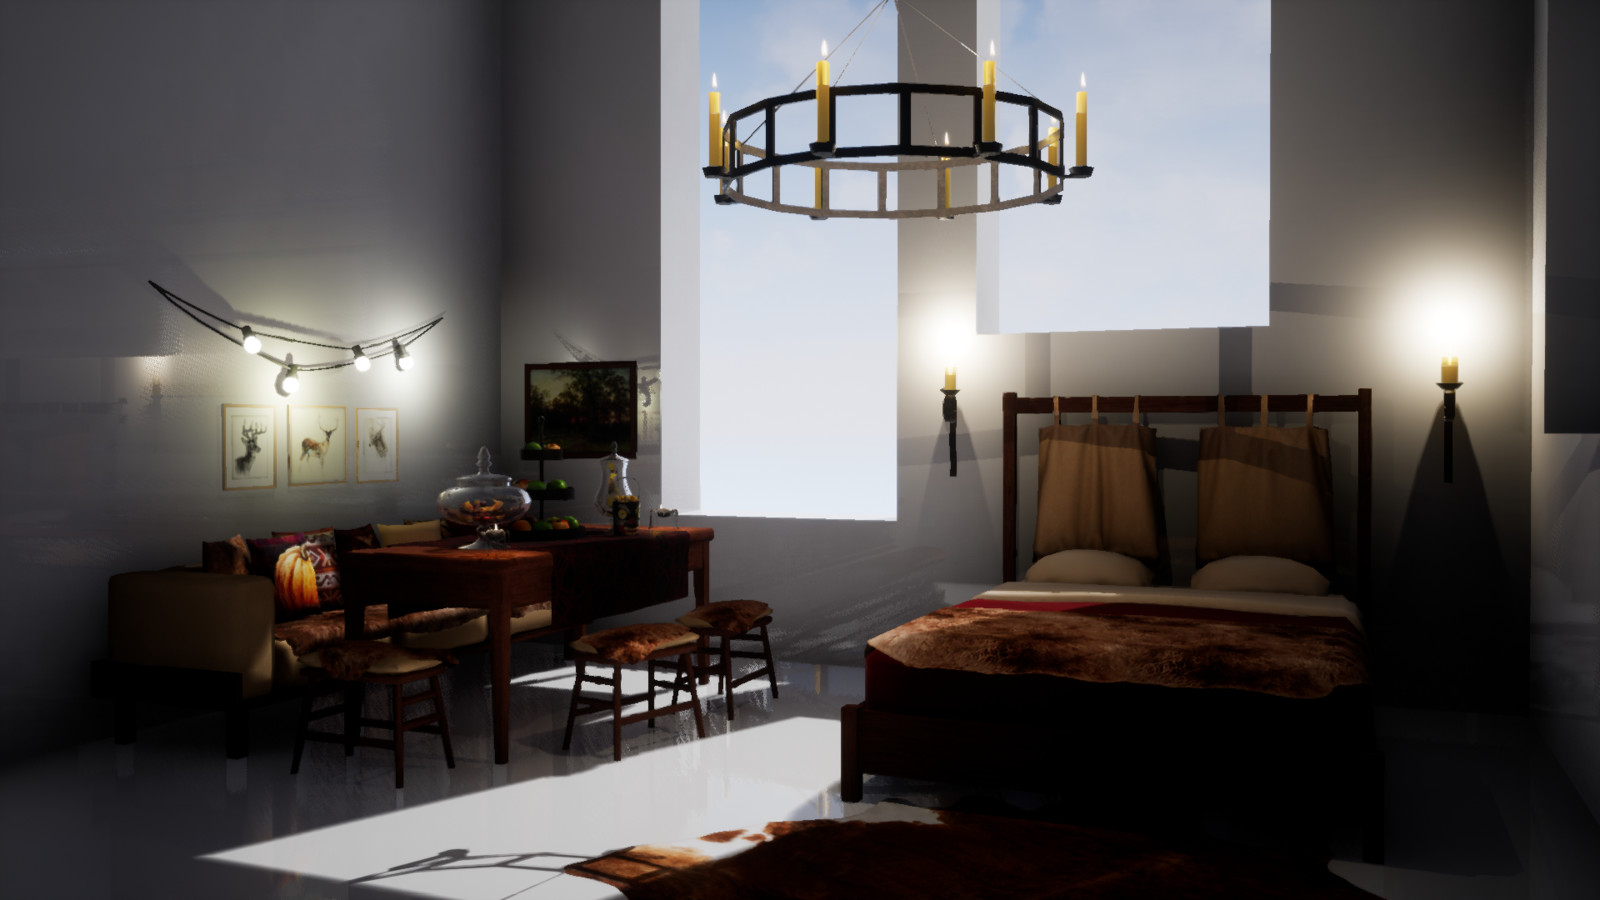 Unreal Engine 4. Main picture